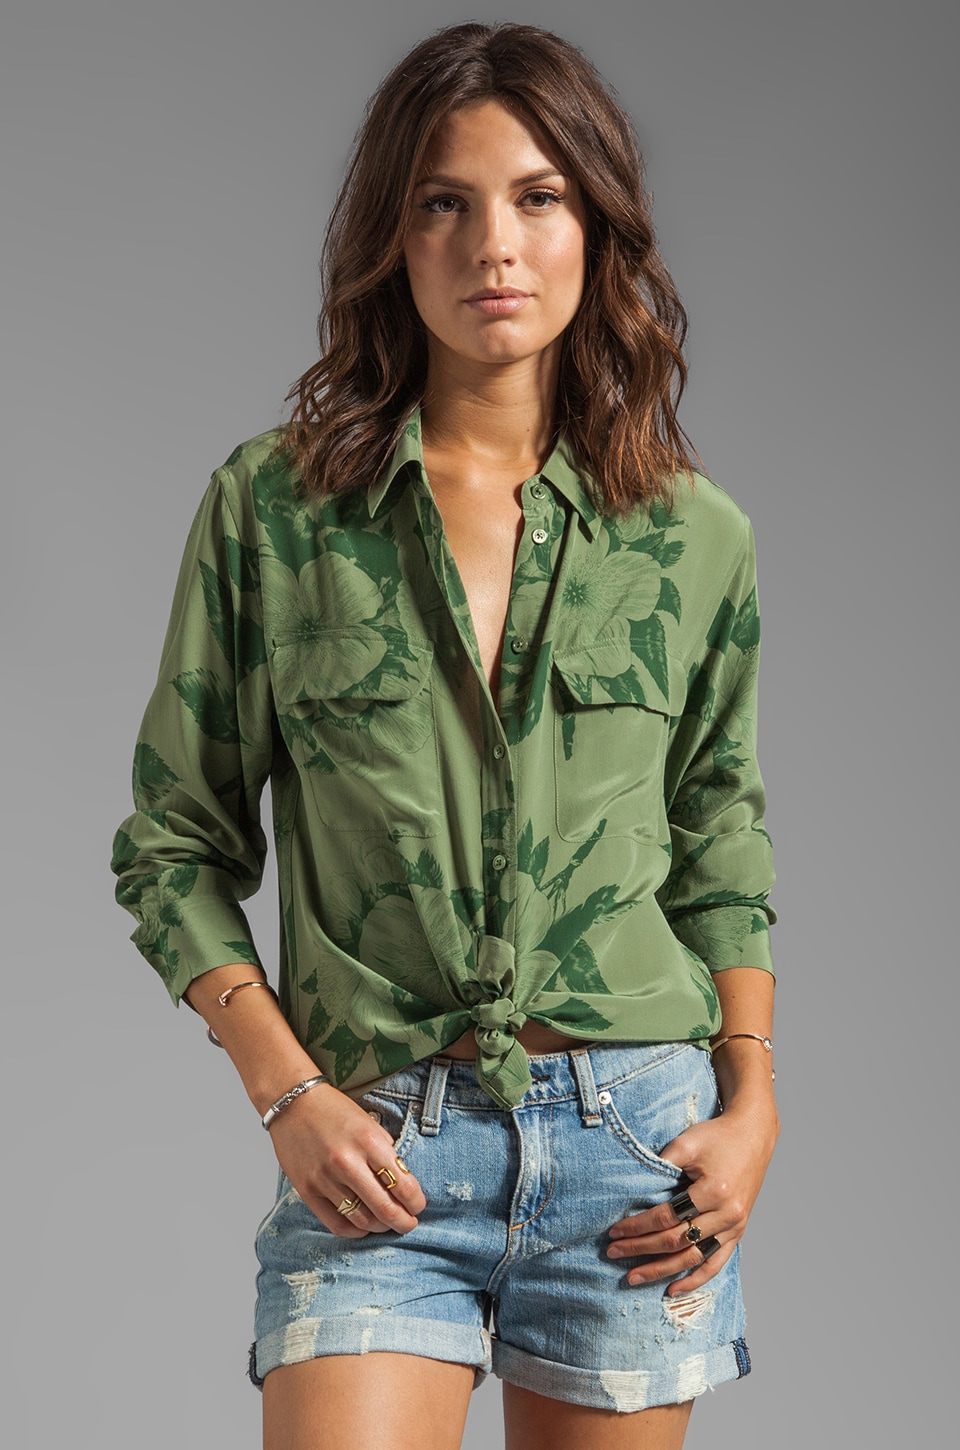 Equipment Tropical Floral Signature Blouse in Safari Green